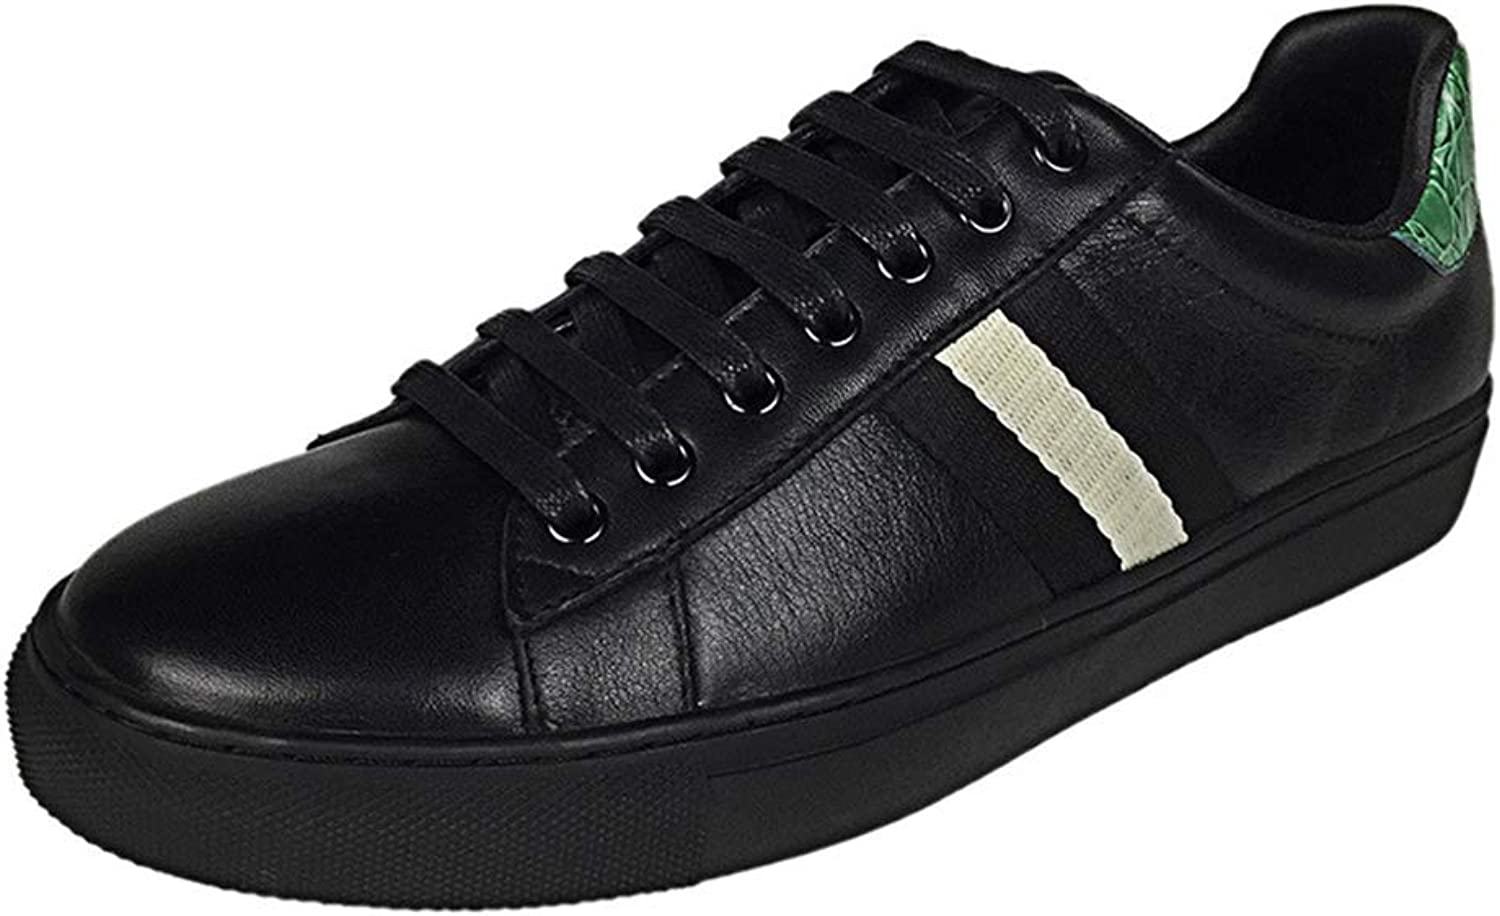 Men's shoes Flat Loafers Lace-up Slip-Ons Running shoes Casual Sneakers Cycling shoes Loafers,Black,41